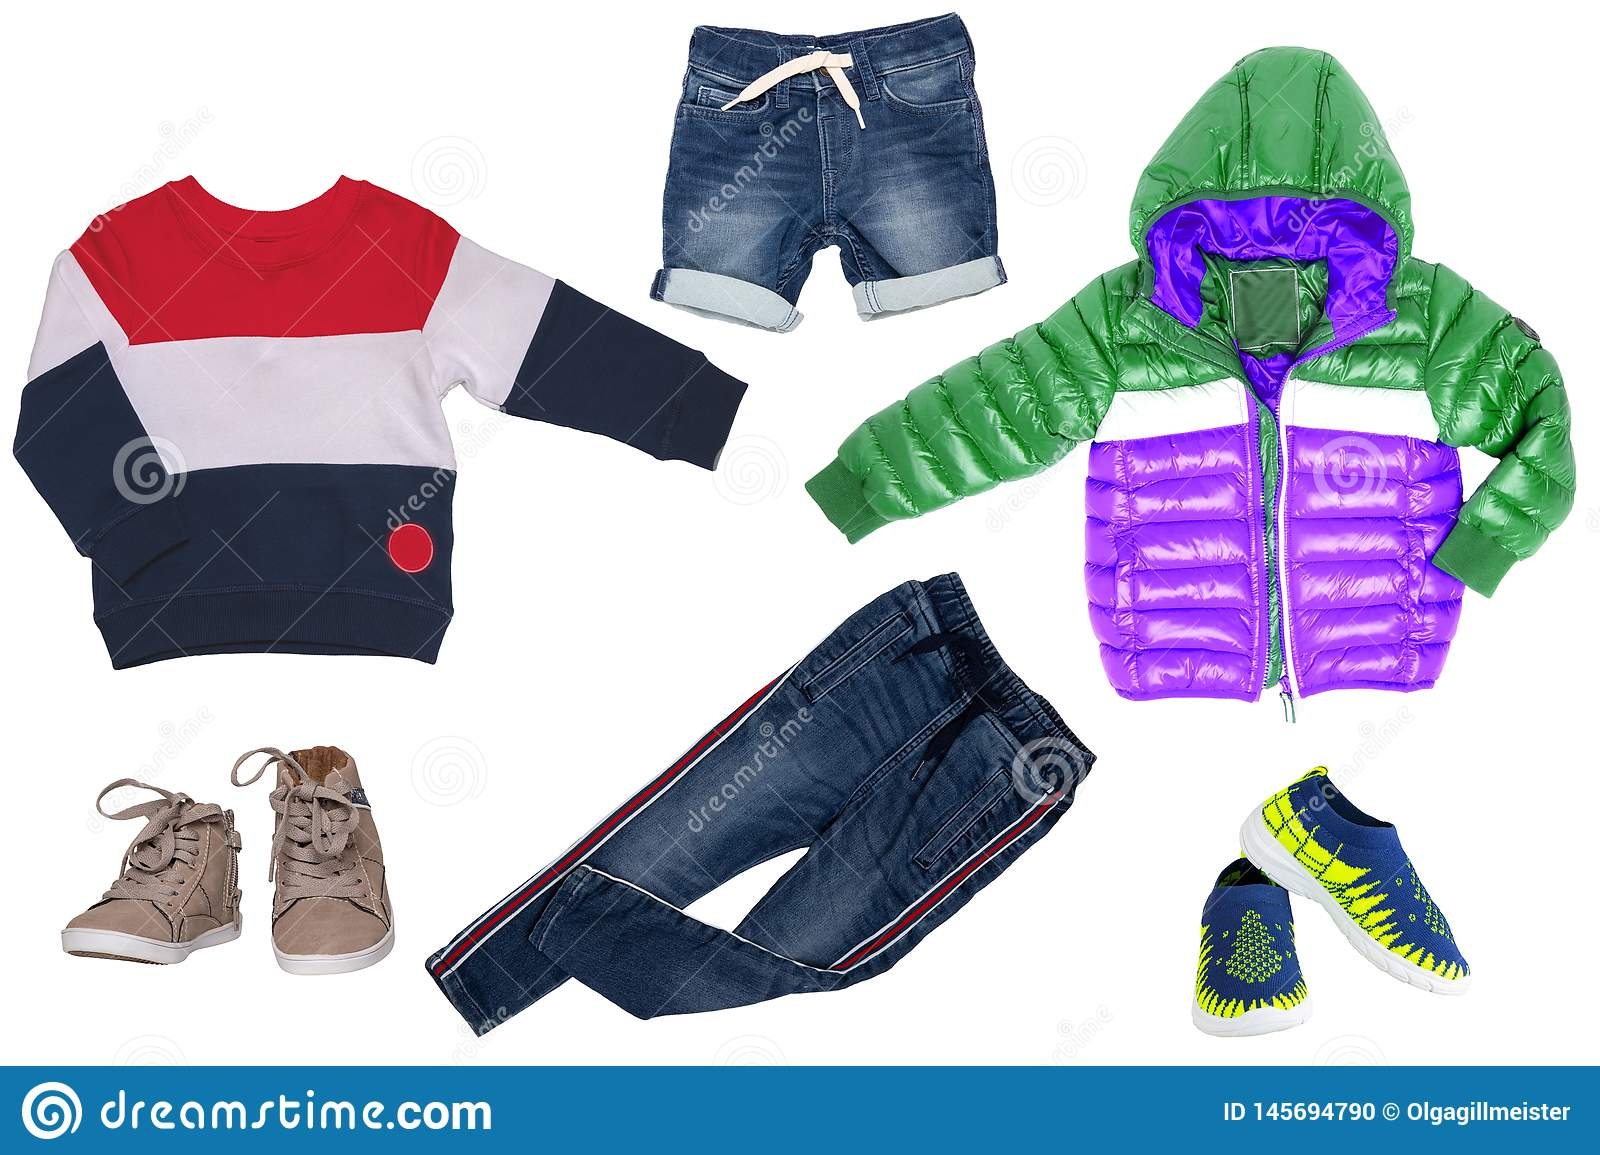 Collage set of children clothes. Denim jeans or pants, short jeans, two pair shoes , rain jacket and a sweater for child boy